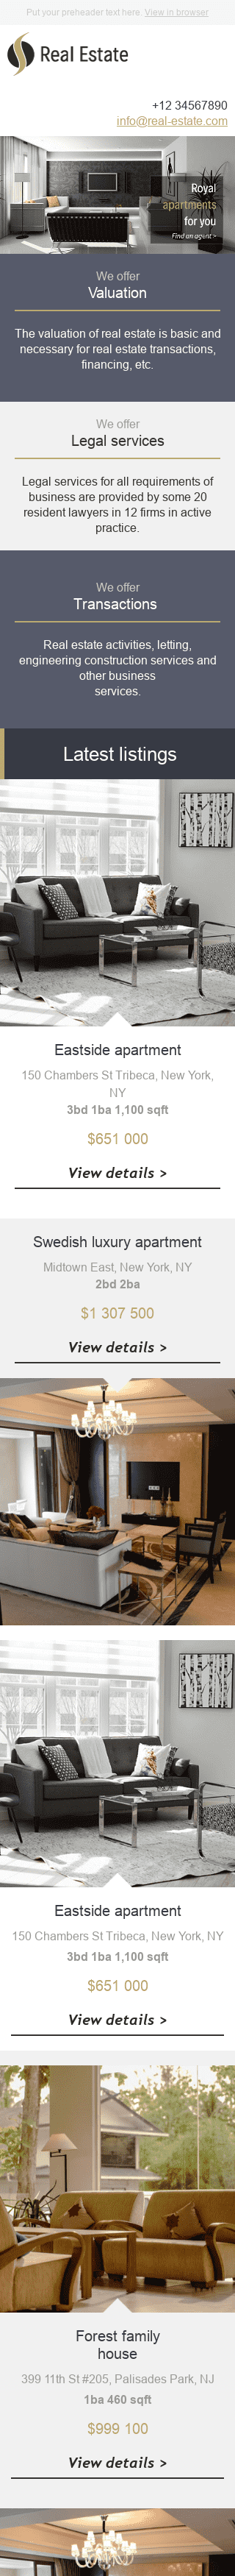 "Promo Email Template ""Royal Apartments"" for Real Estate industry mobile view"